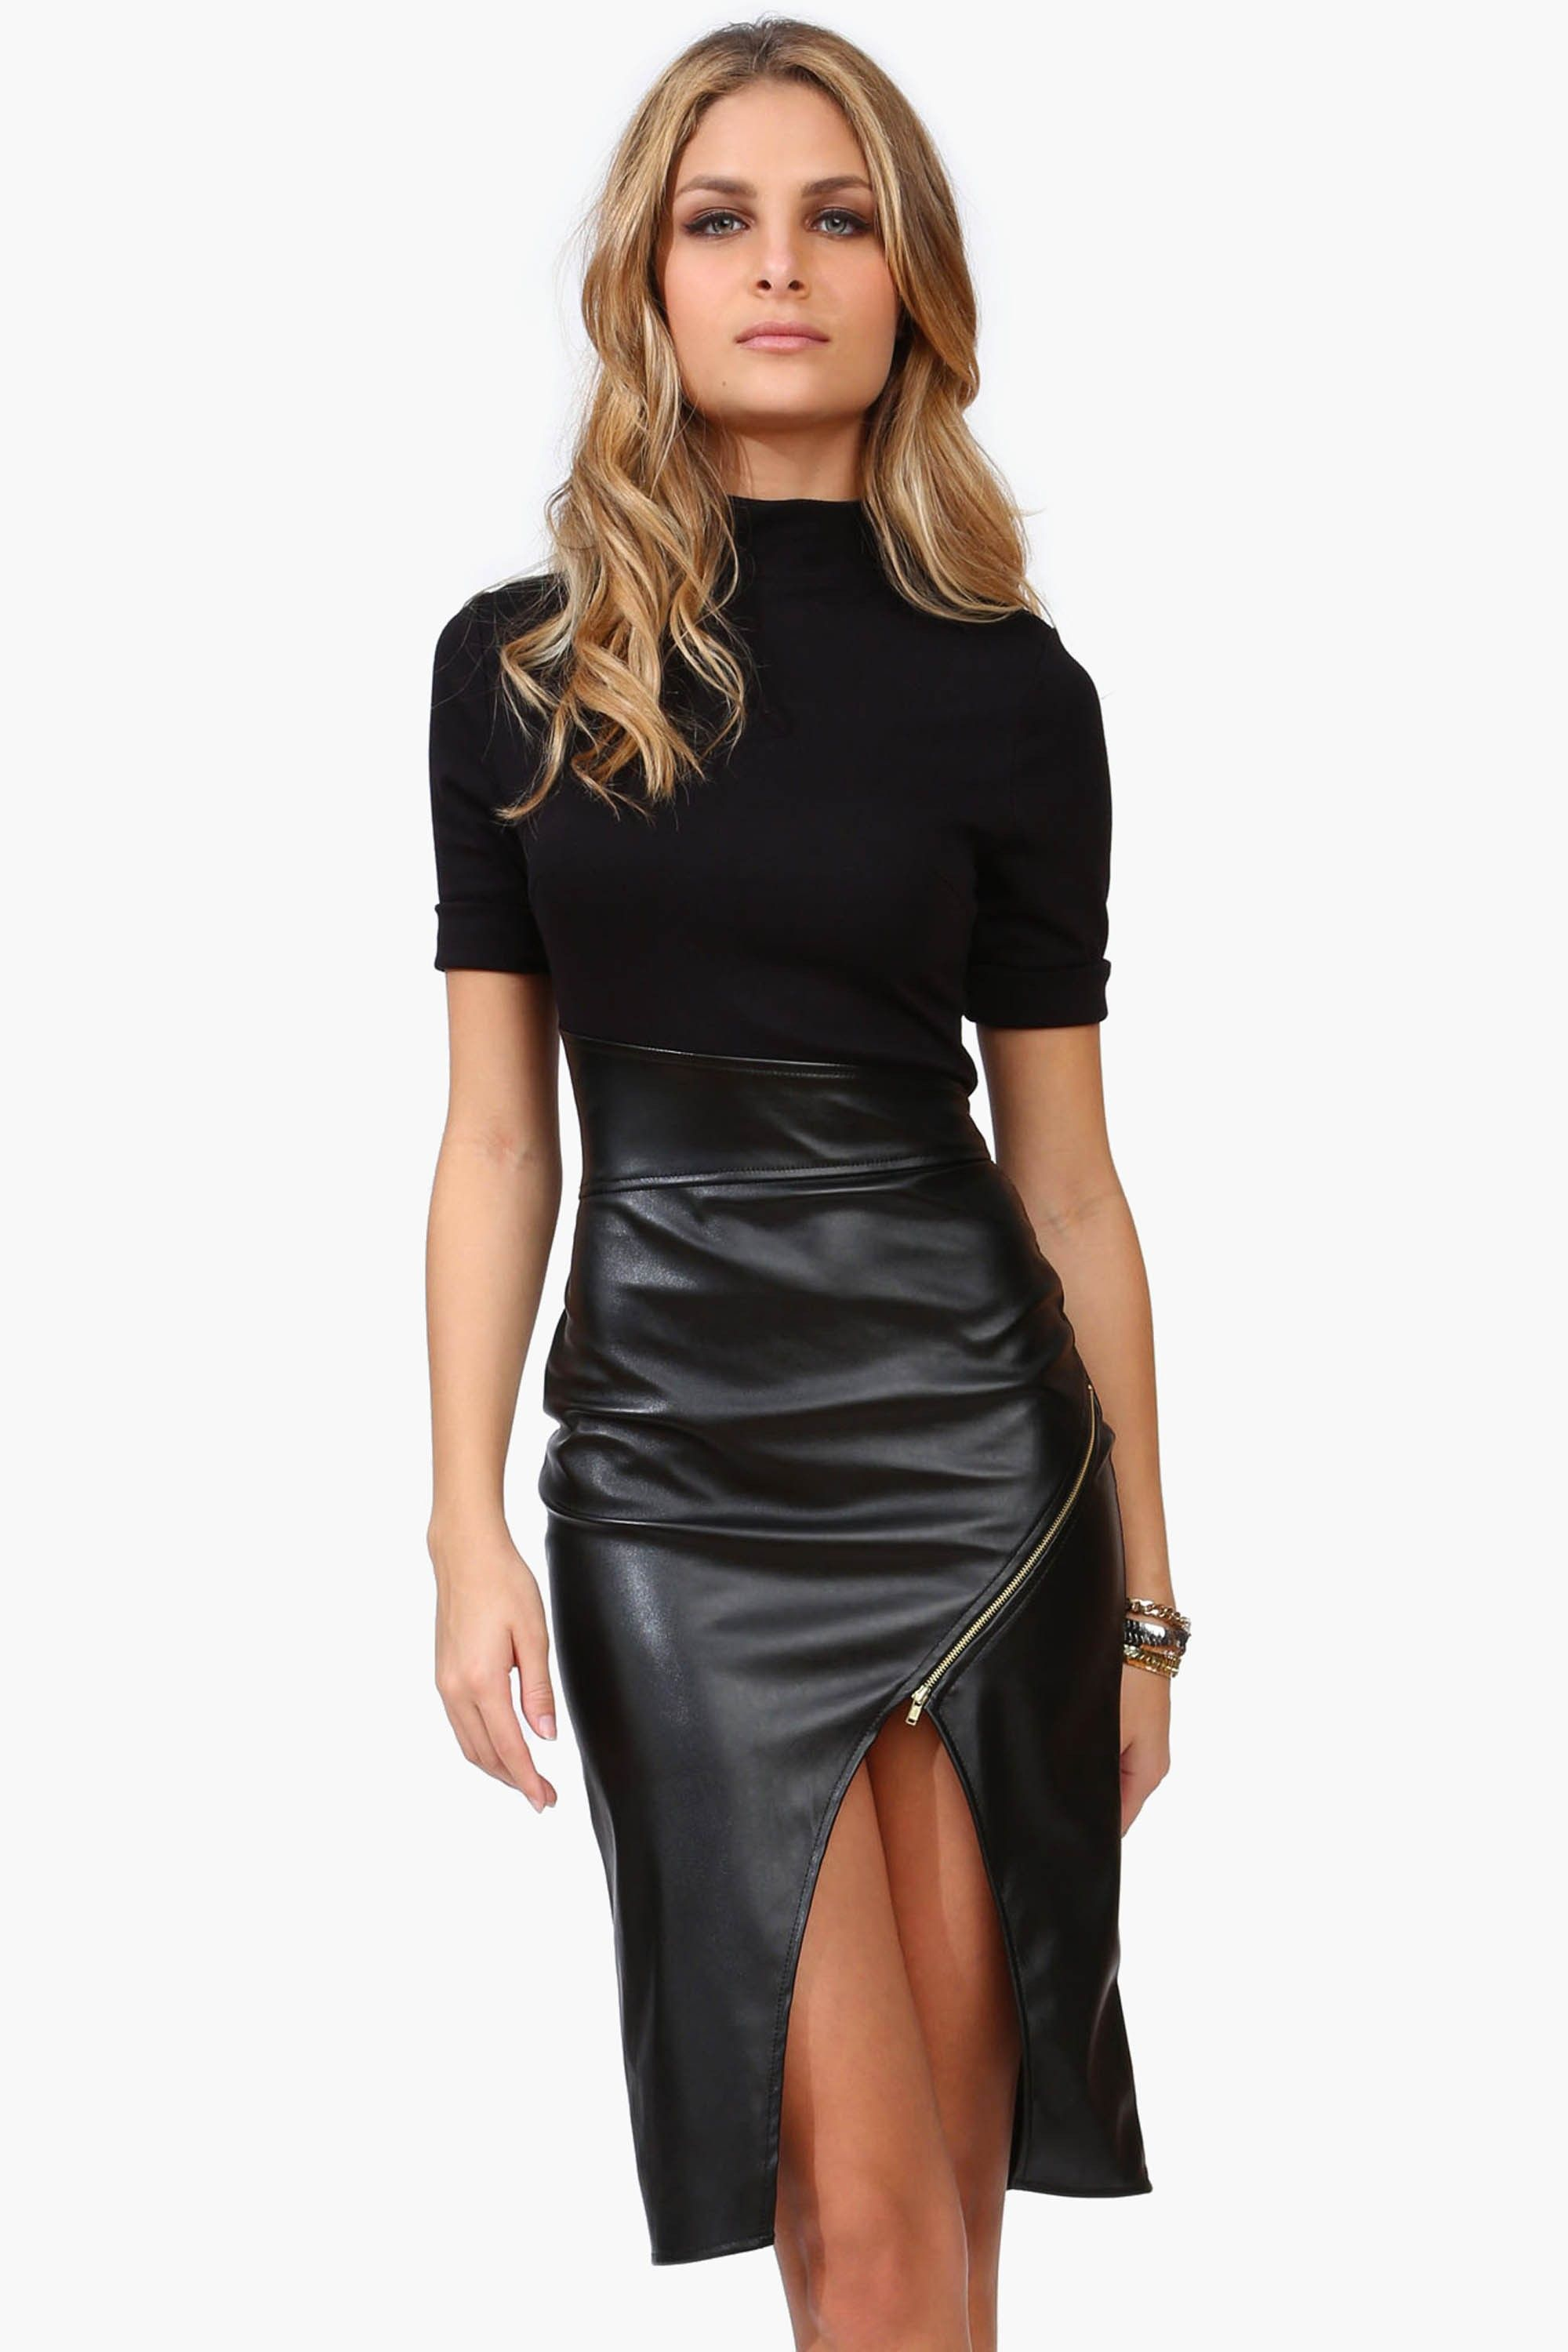 Body Language Dress - has faux leather bottom with tight ...